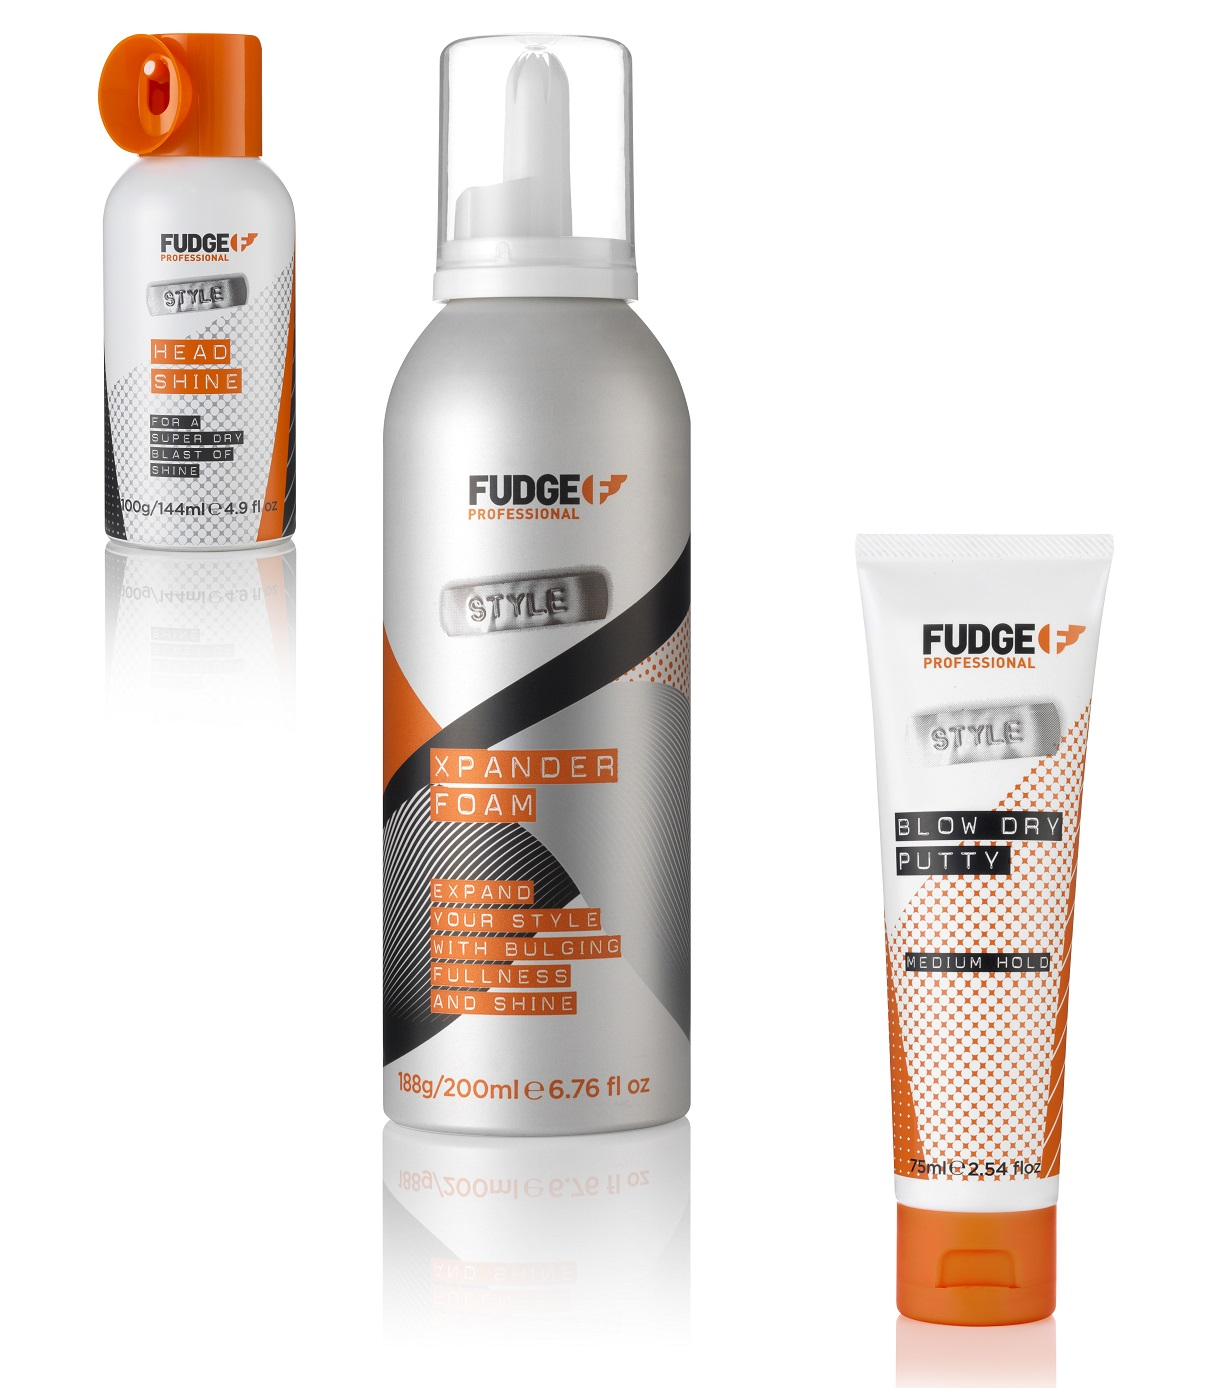 Fudge products - www.salonbusiness.co.uk